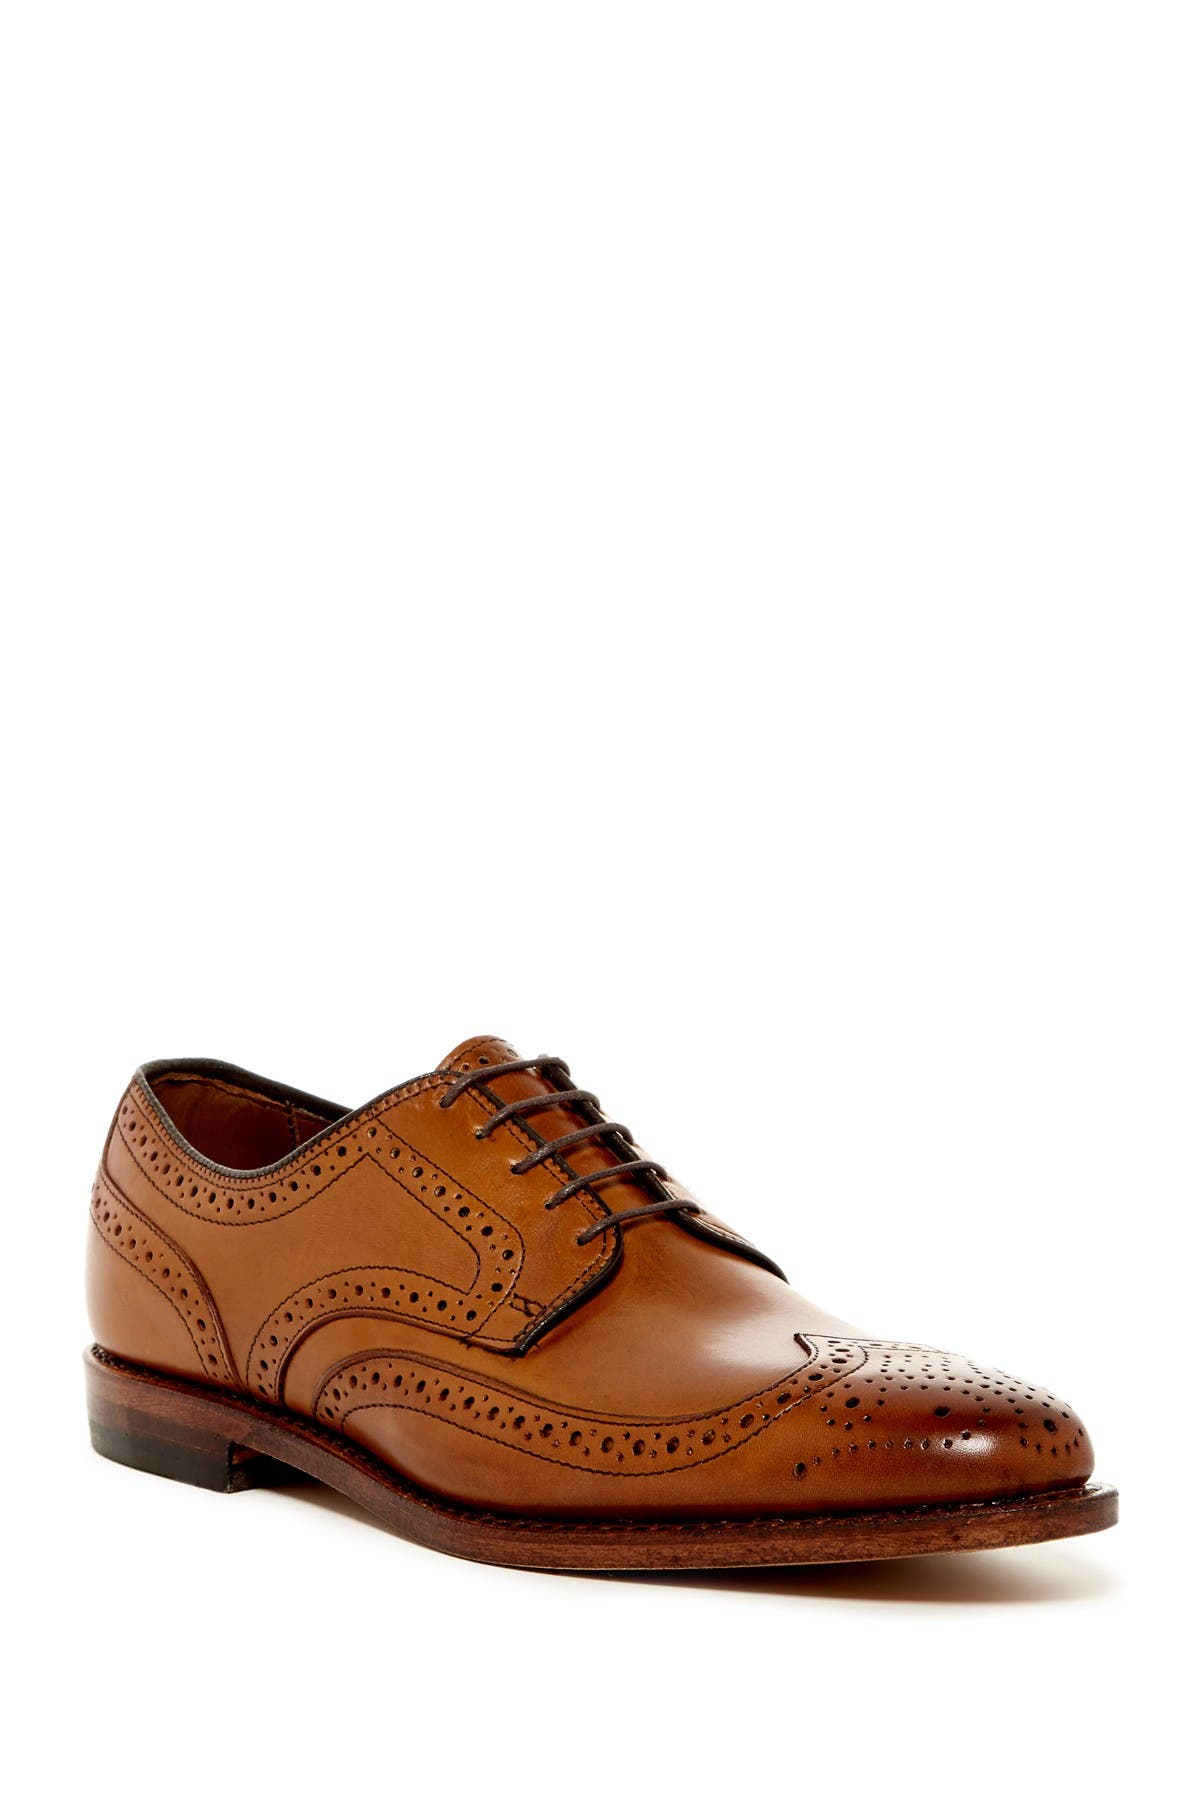 Image of Allen Edmonds Stuttgart Wingtip Blucher - Wide Width Available